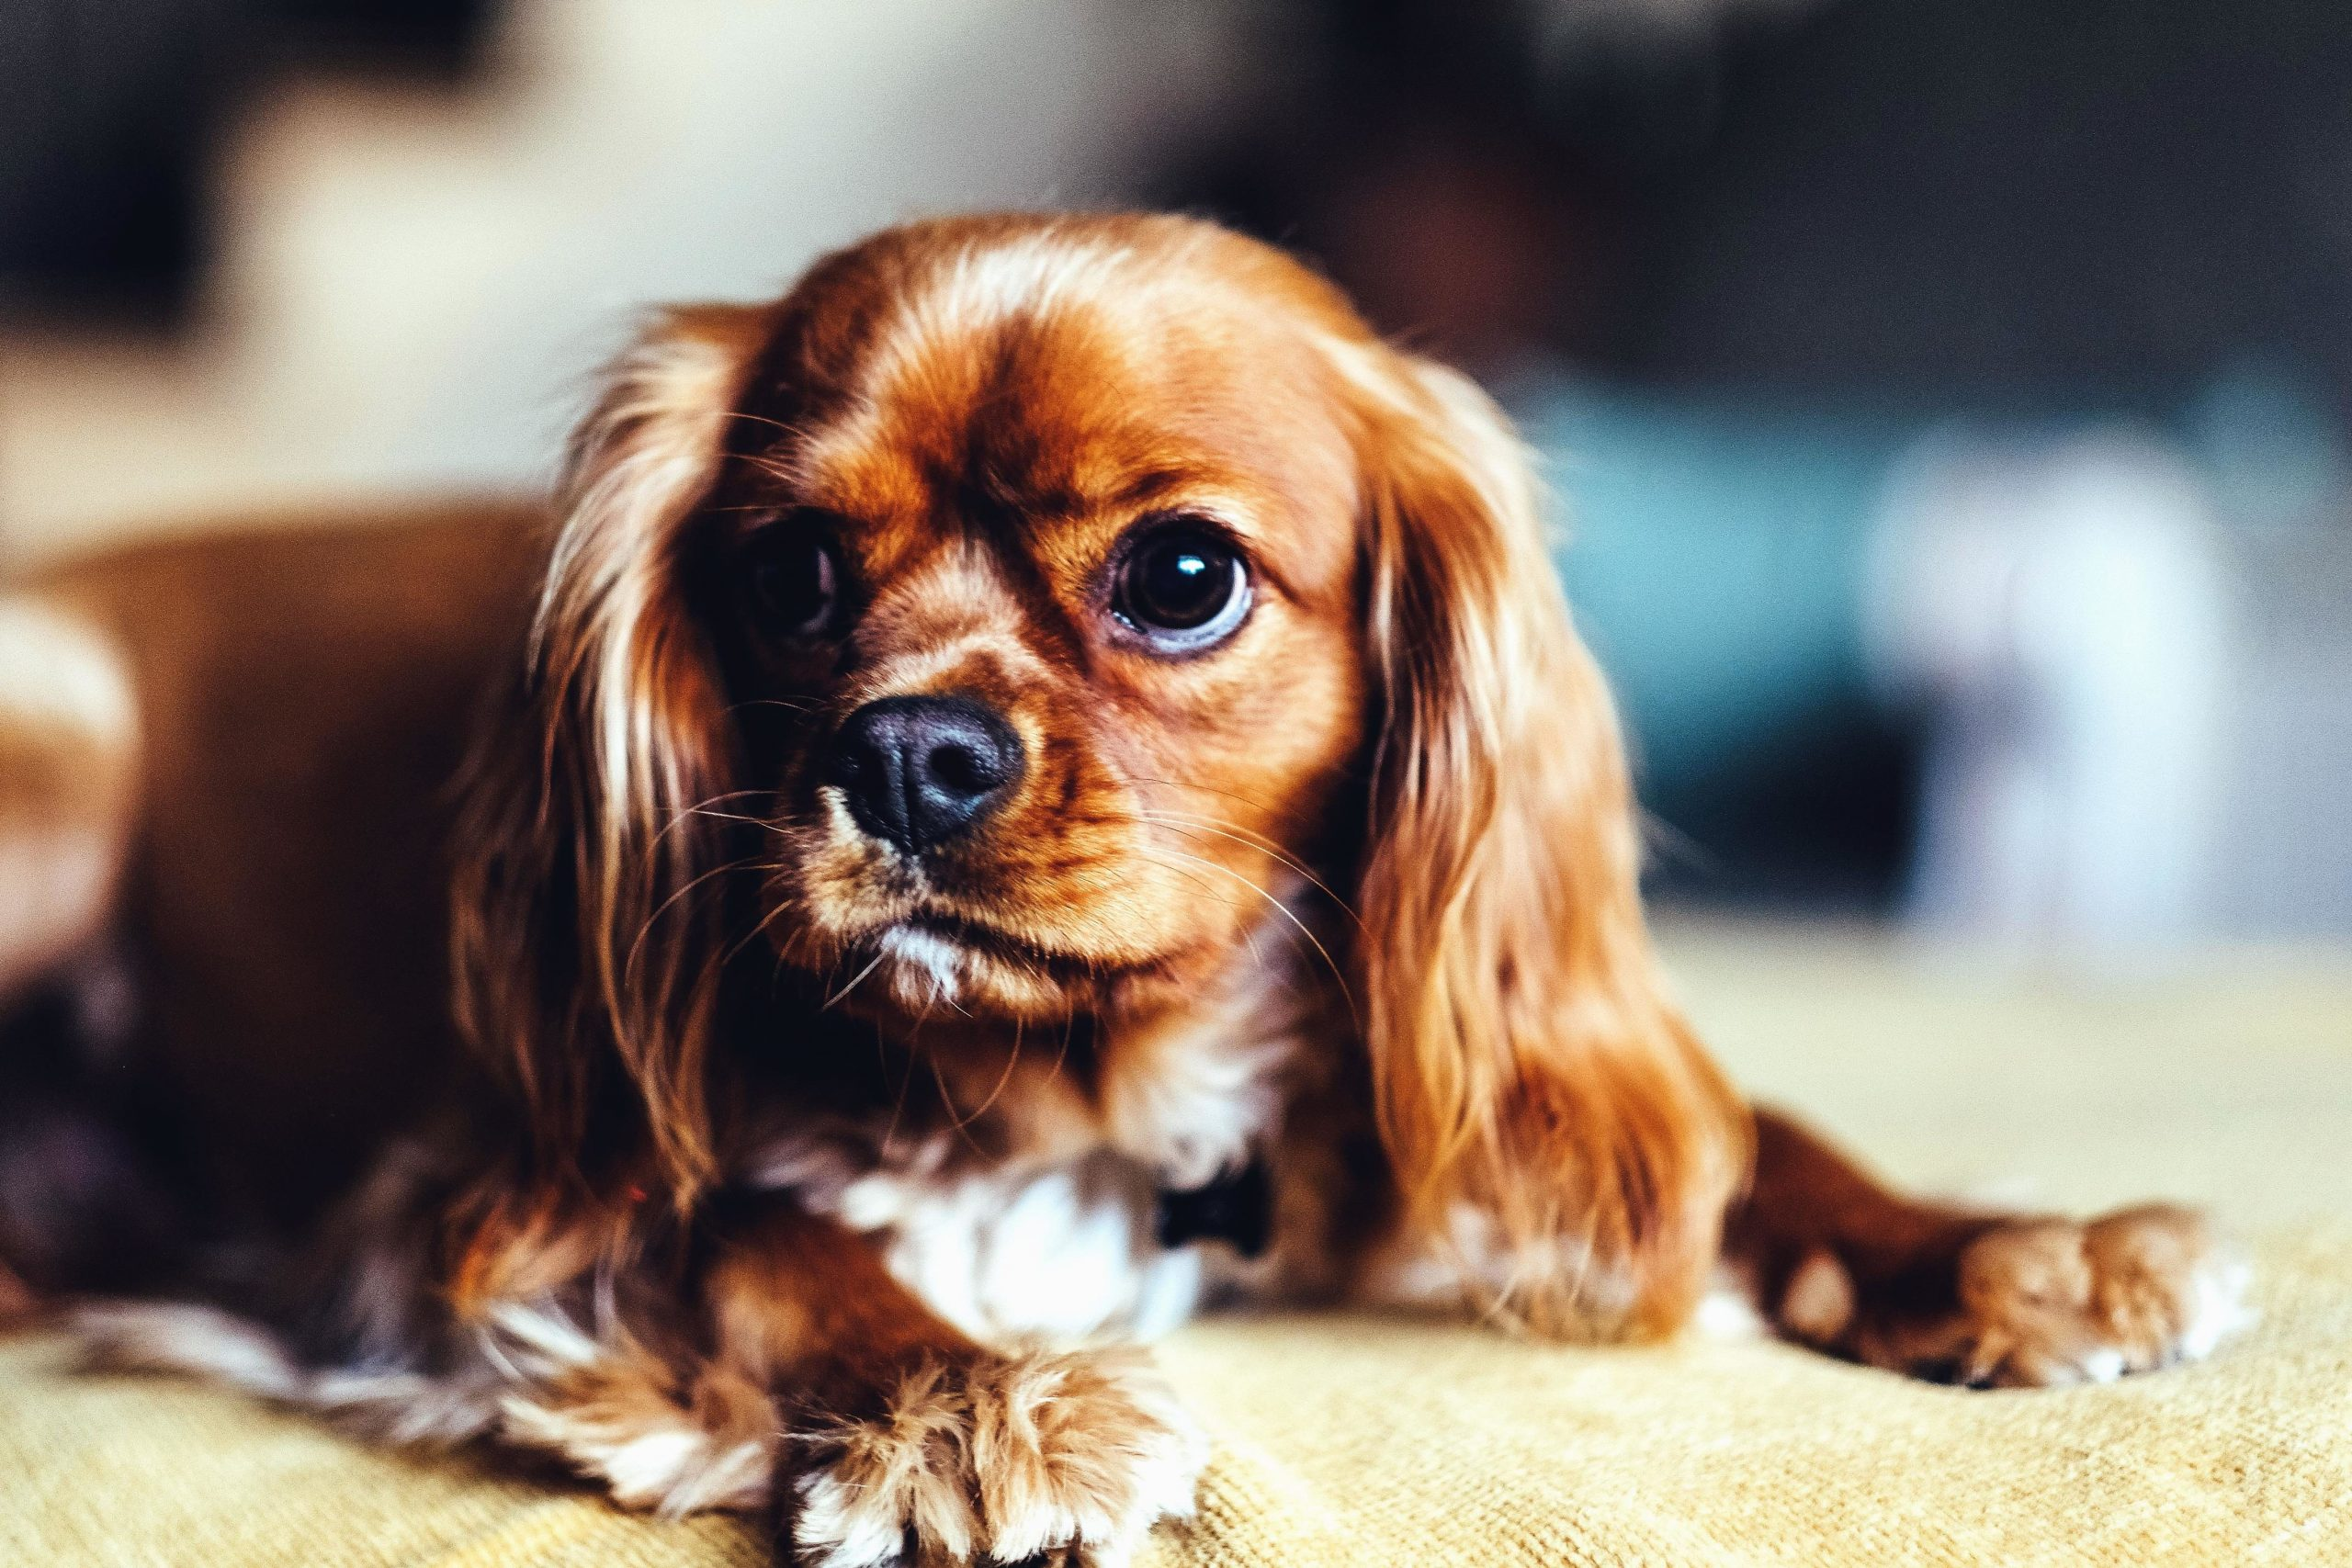 What Are 5 interesting Facts About Dogs